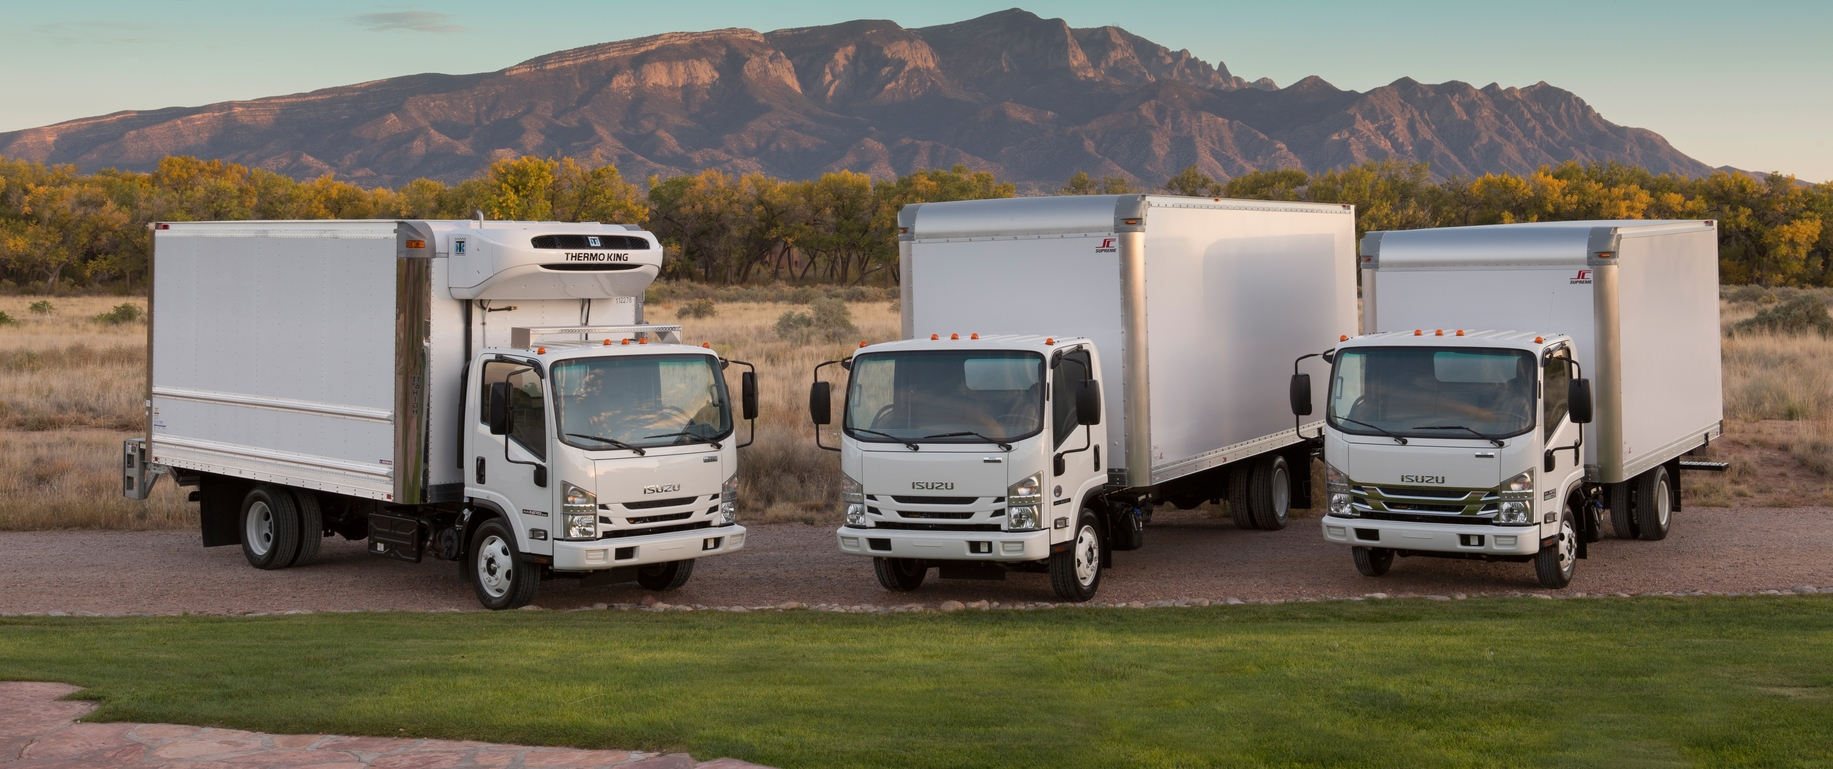 NEW ISUZU TRUCKS